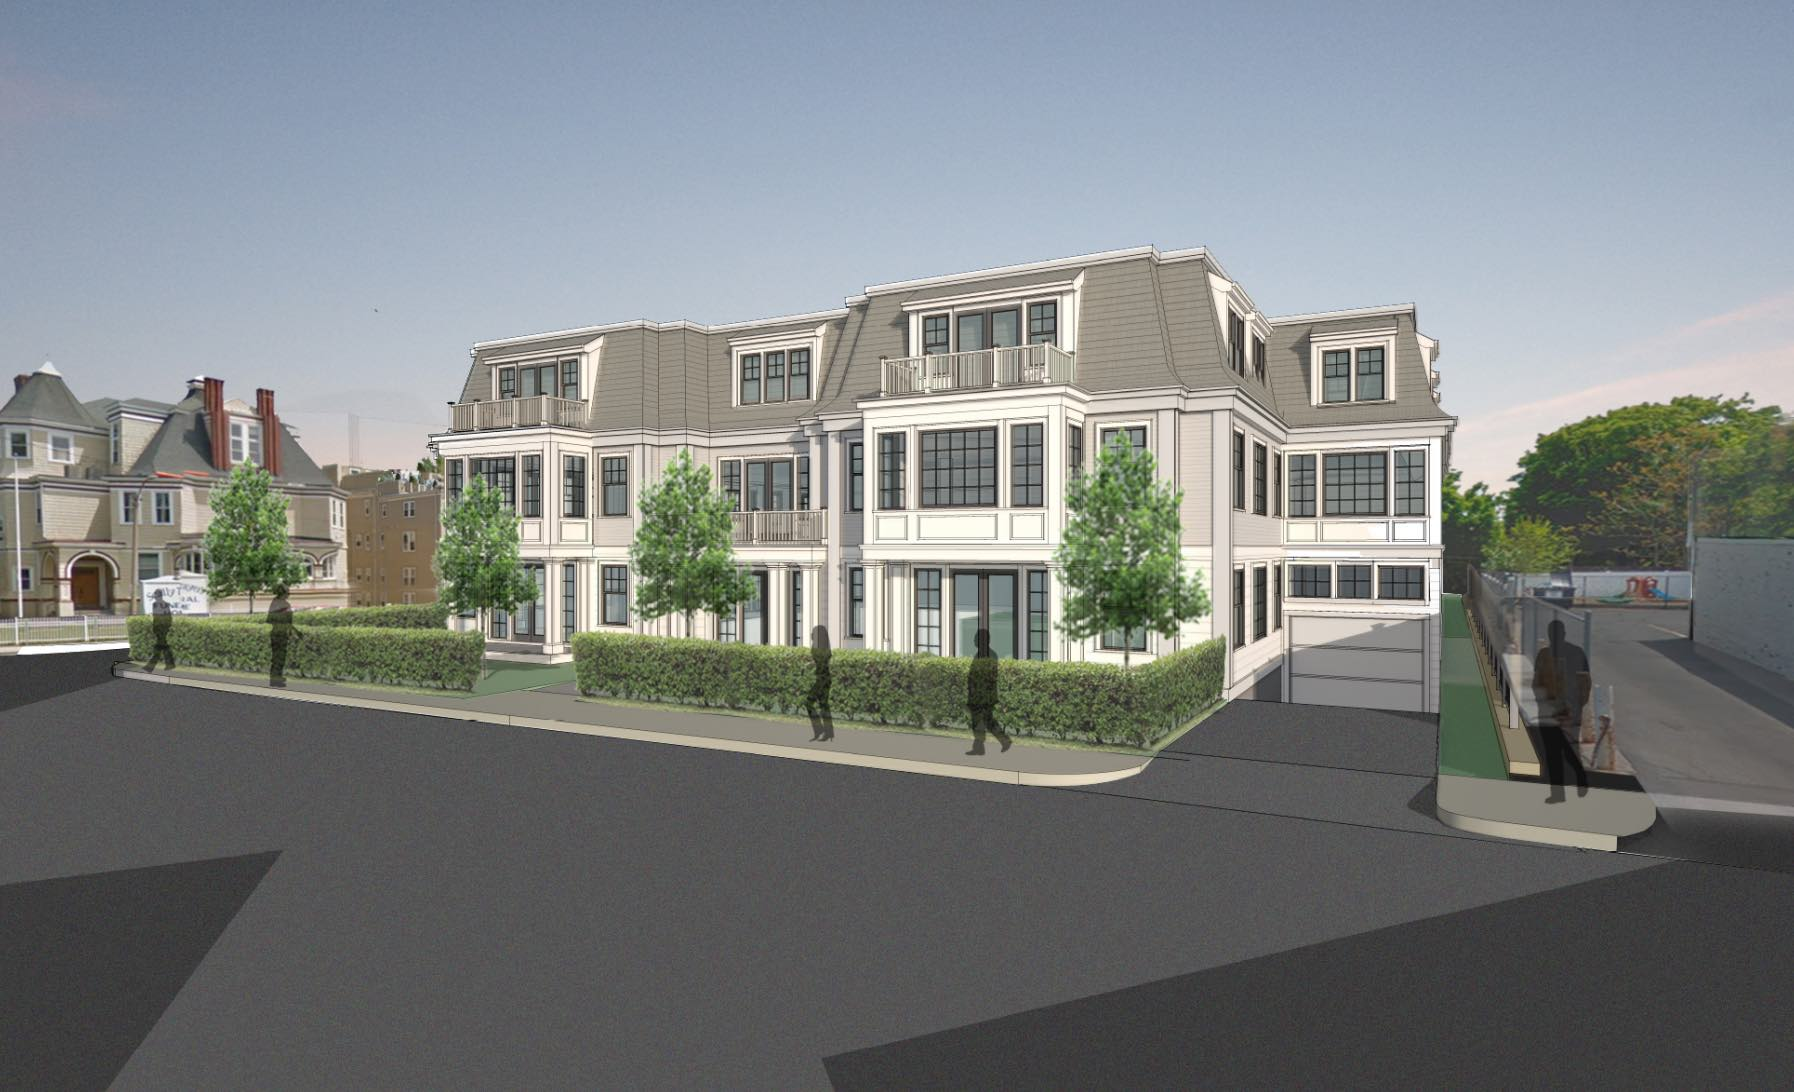 54 pleasant street funeral home proposed development dorchester boston savin hill jones hill giuseppe arcari tavern in the square acquisition residential new condominiums